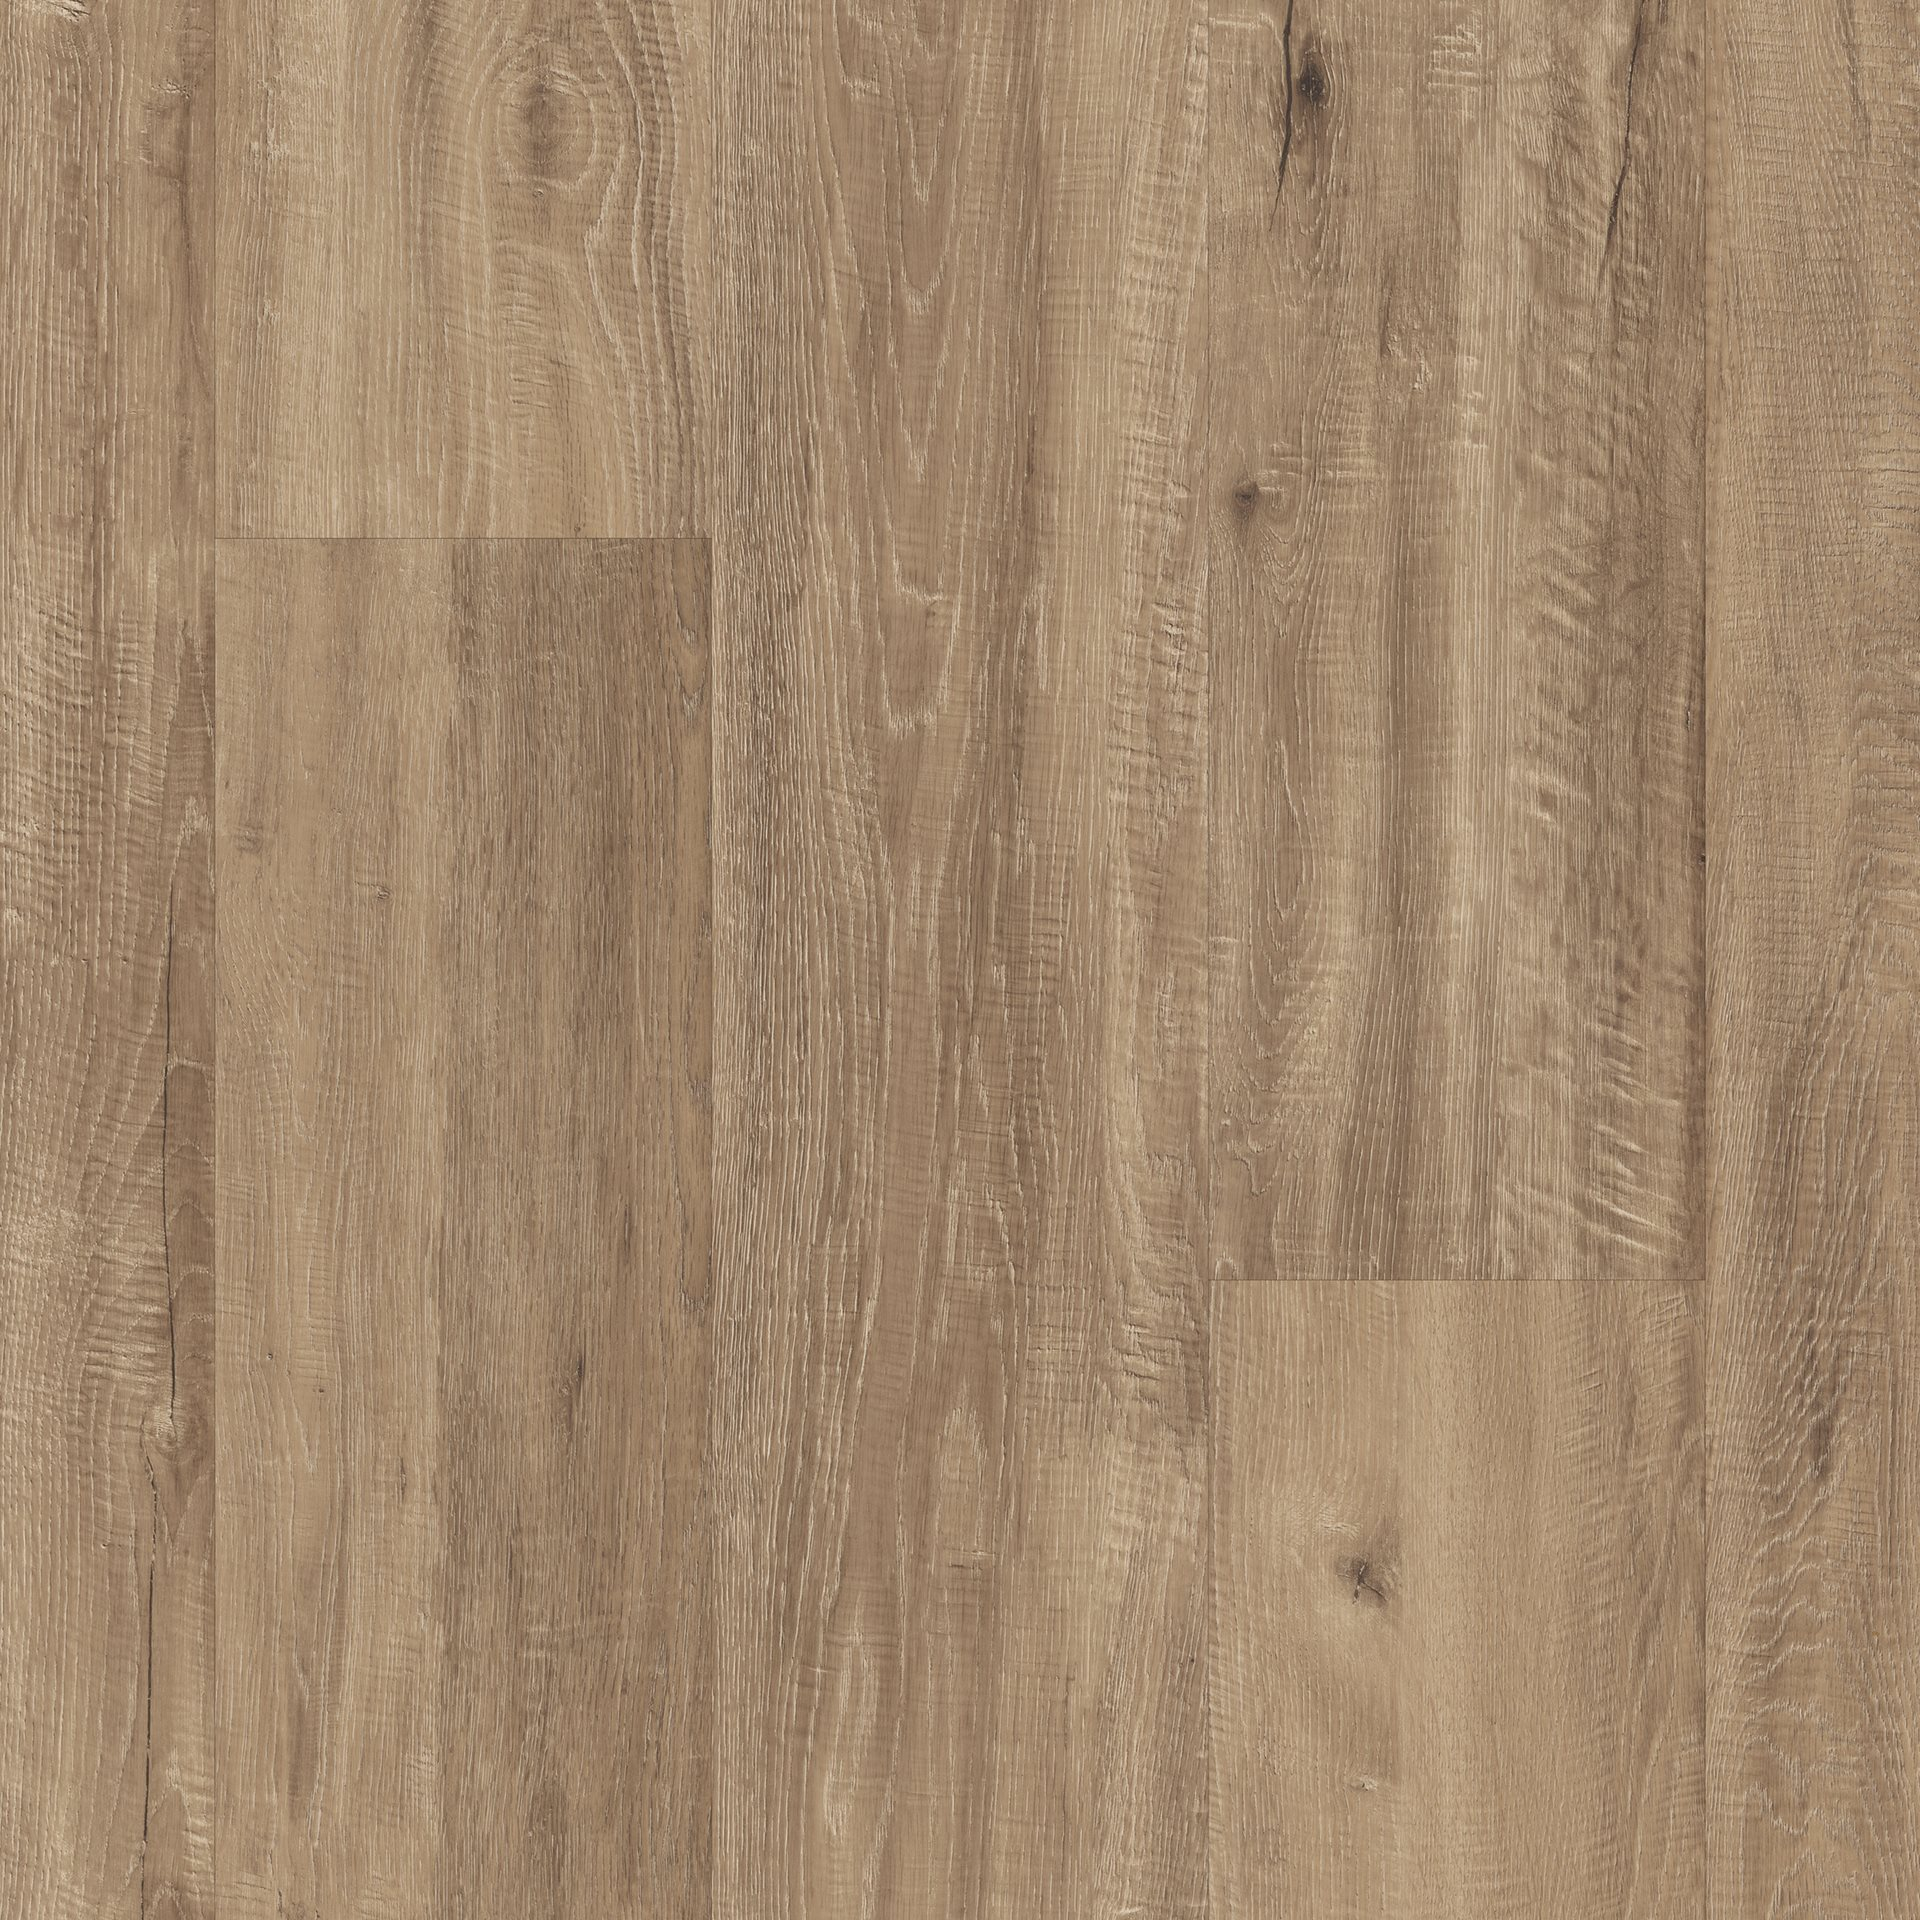 Karndean LooseLay Longboard Neutral Oak